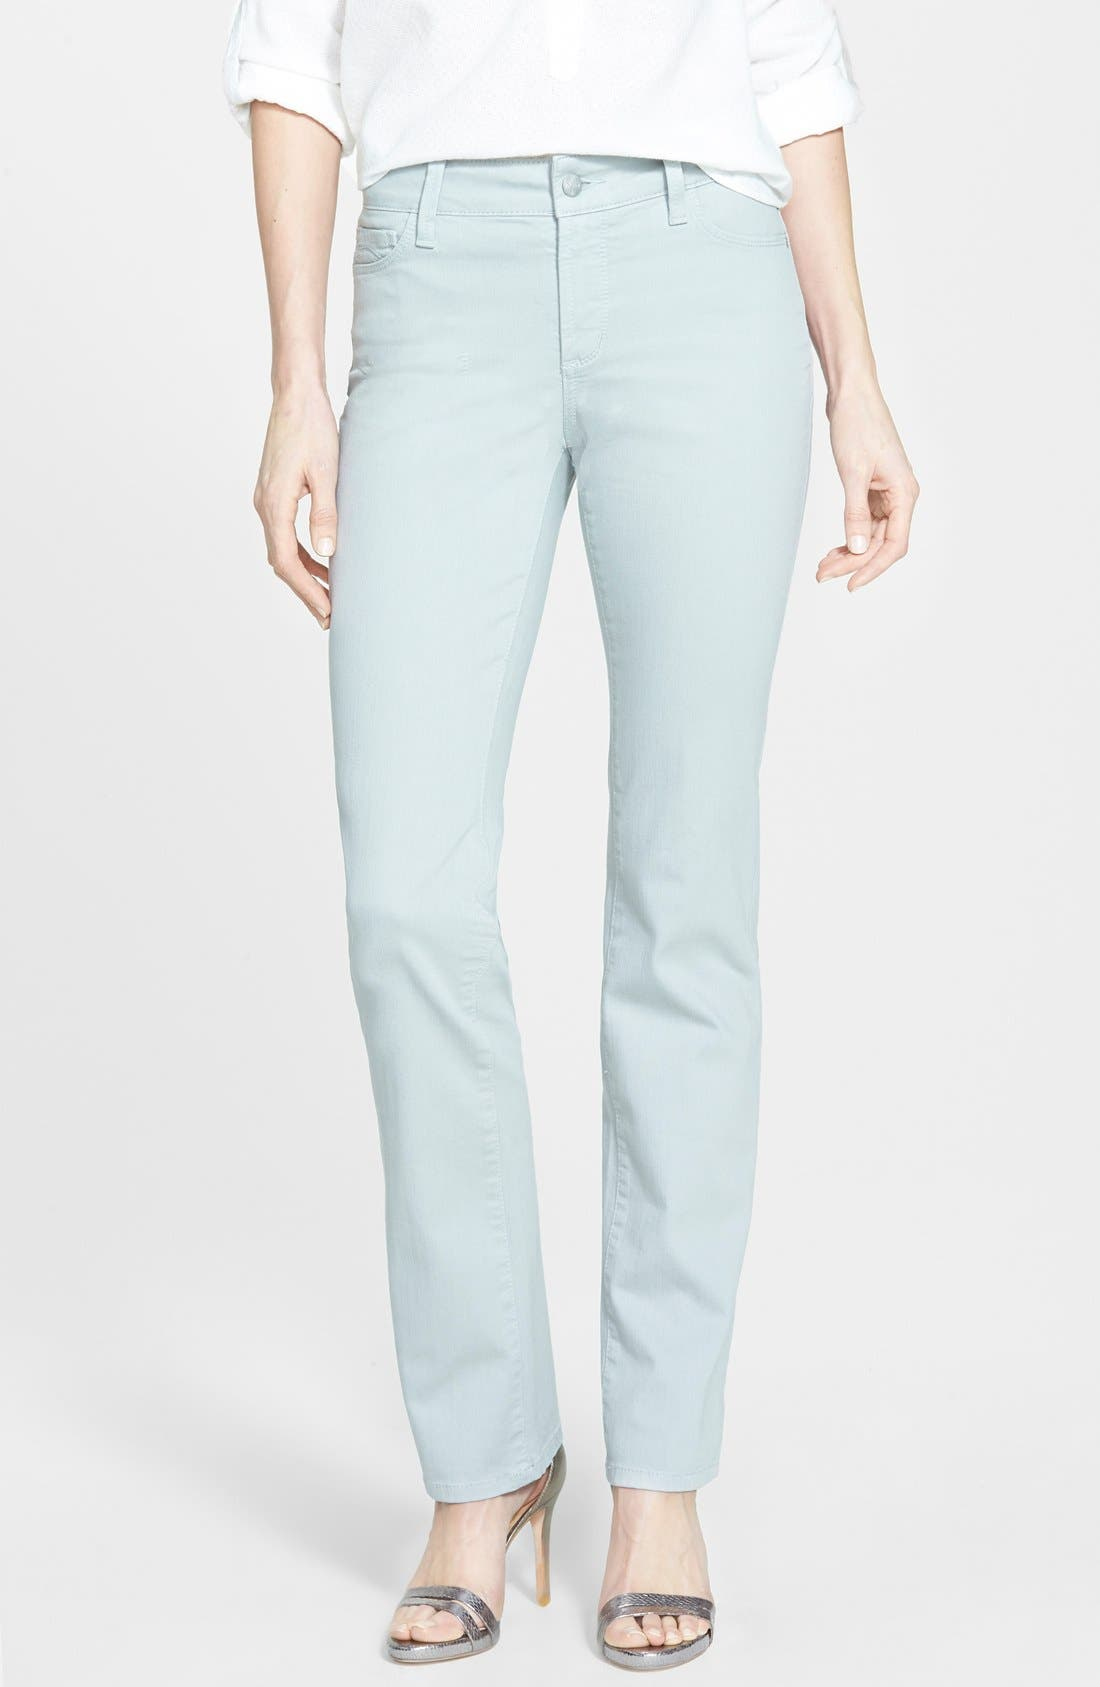 'Marilyn' Stretch Straight Leg Jeans,                         Main,                         color, 020